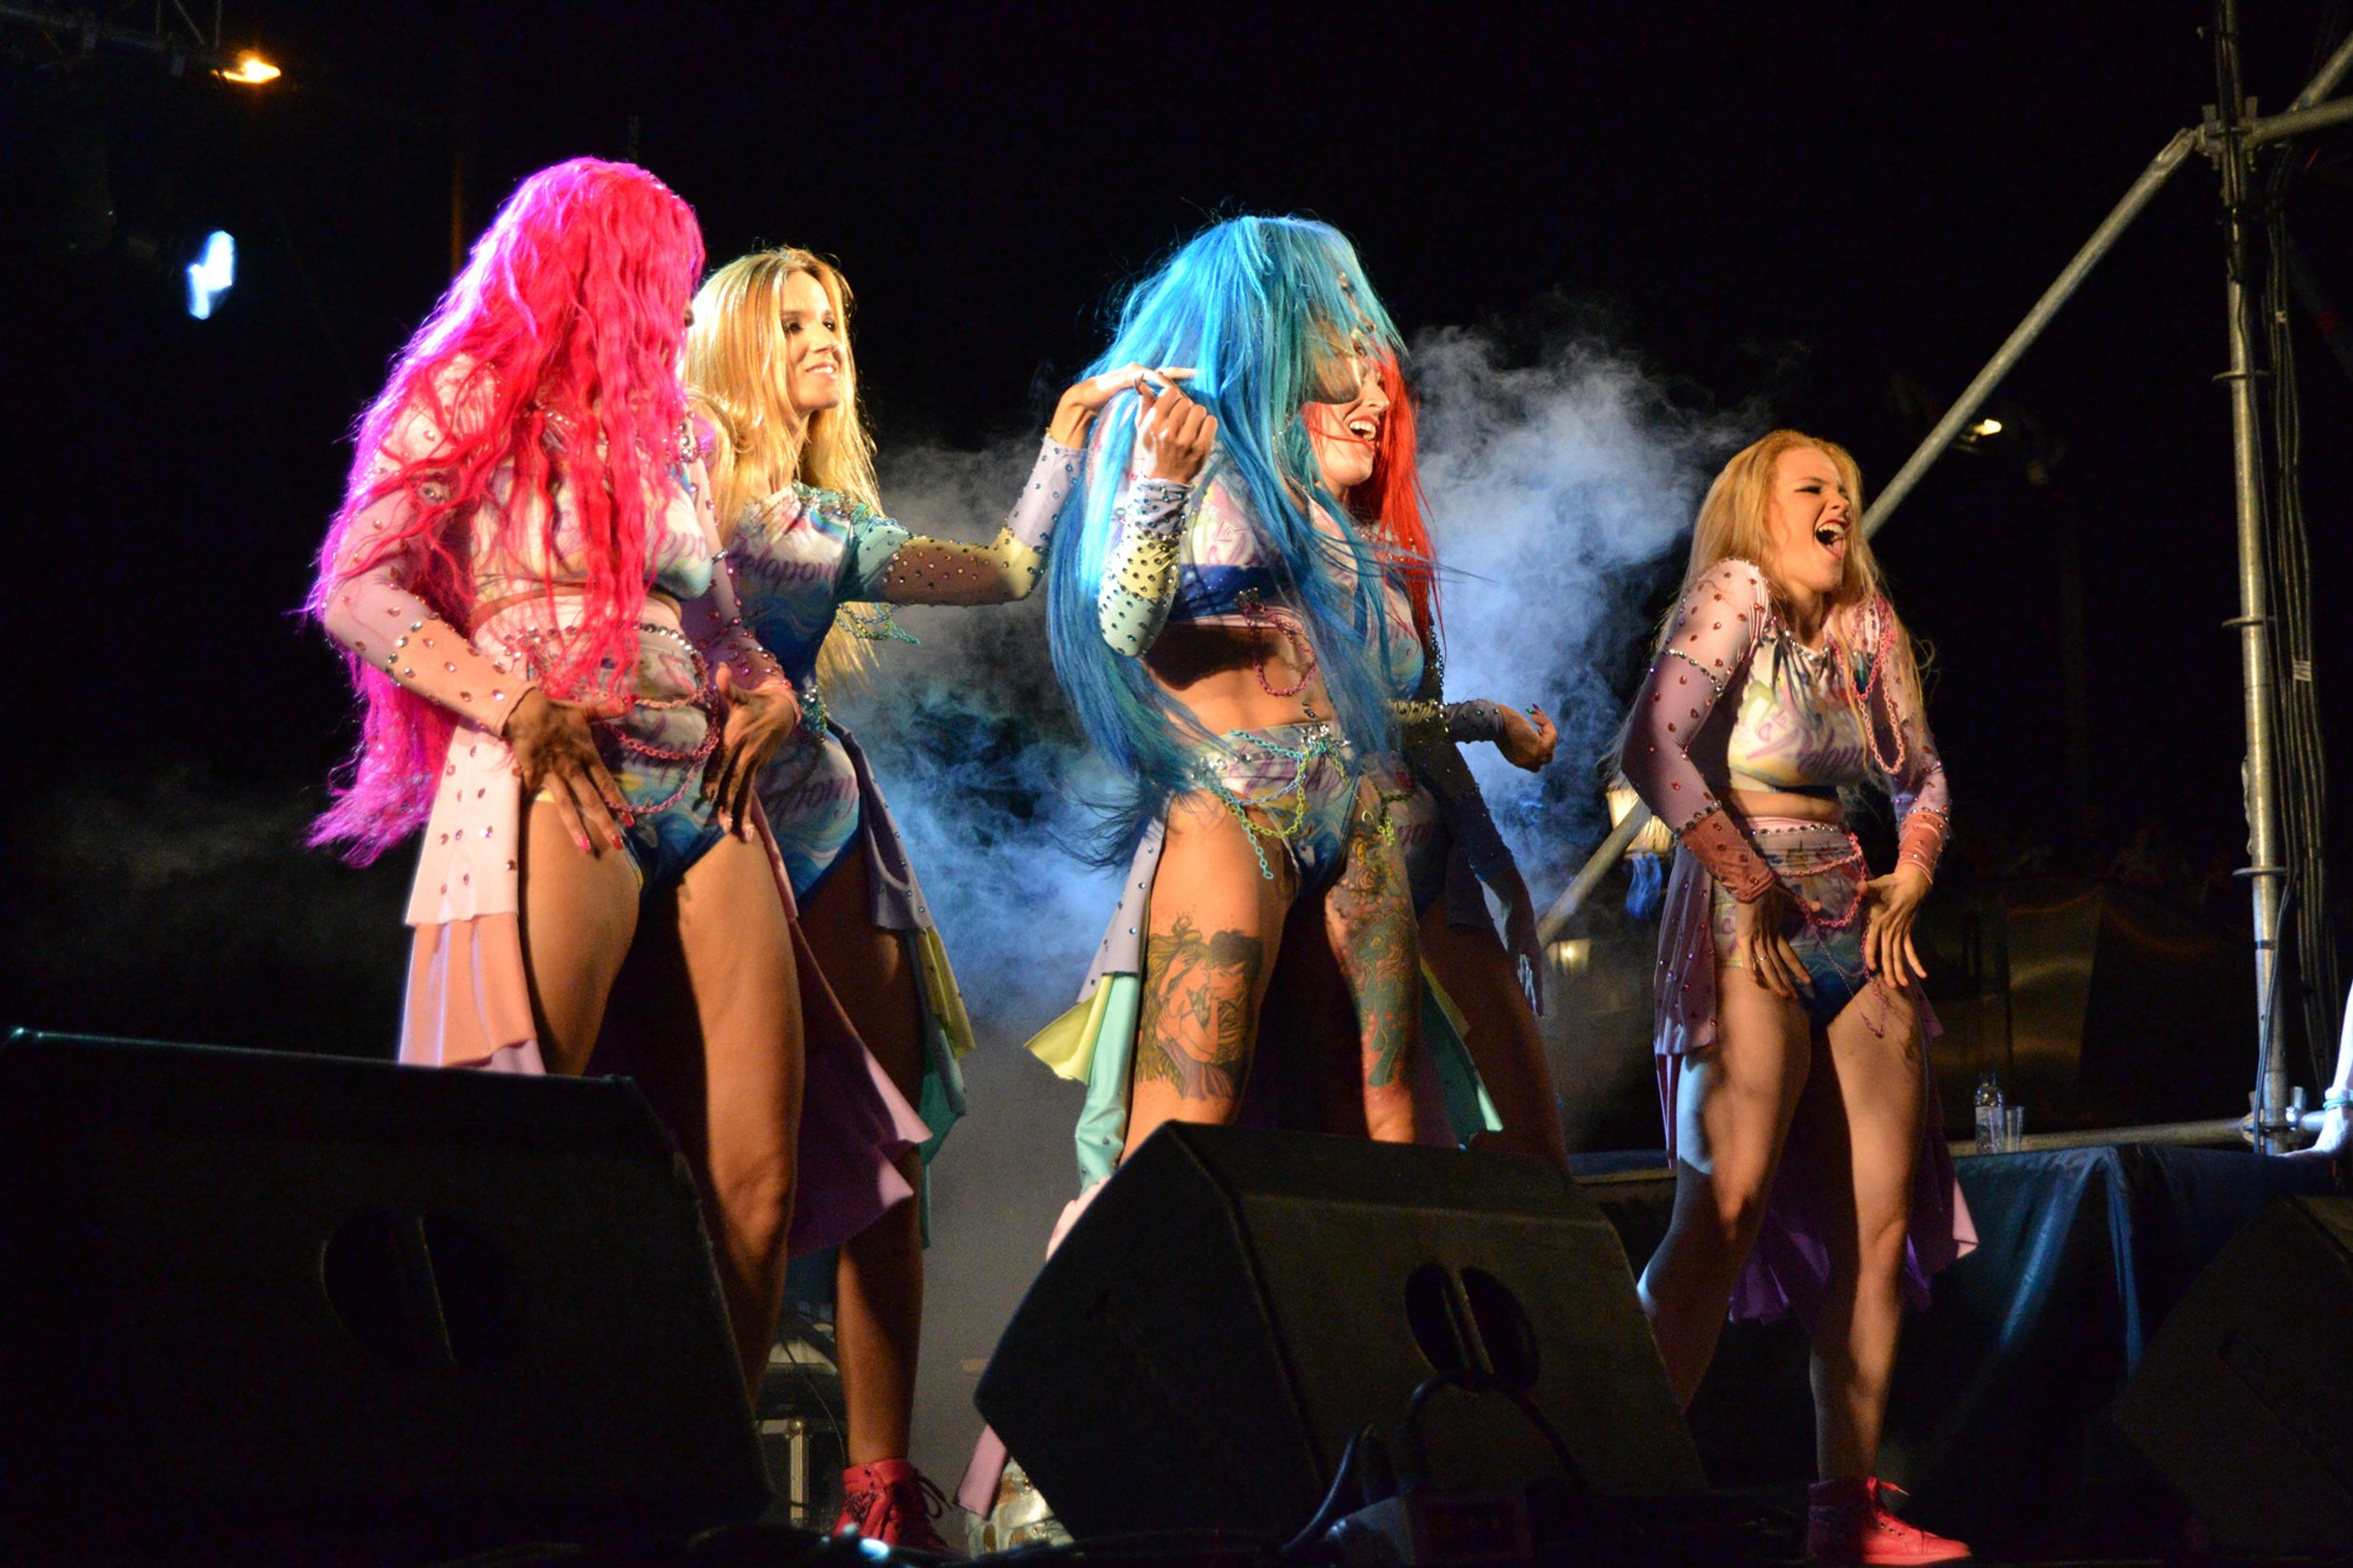 Gay Pride performers in Barcelona - one of the best party cities in Europe